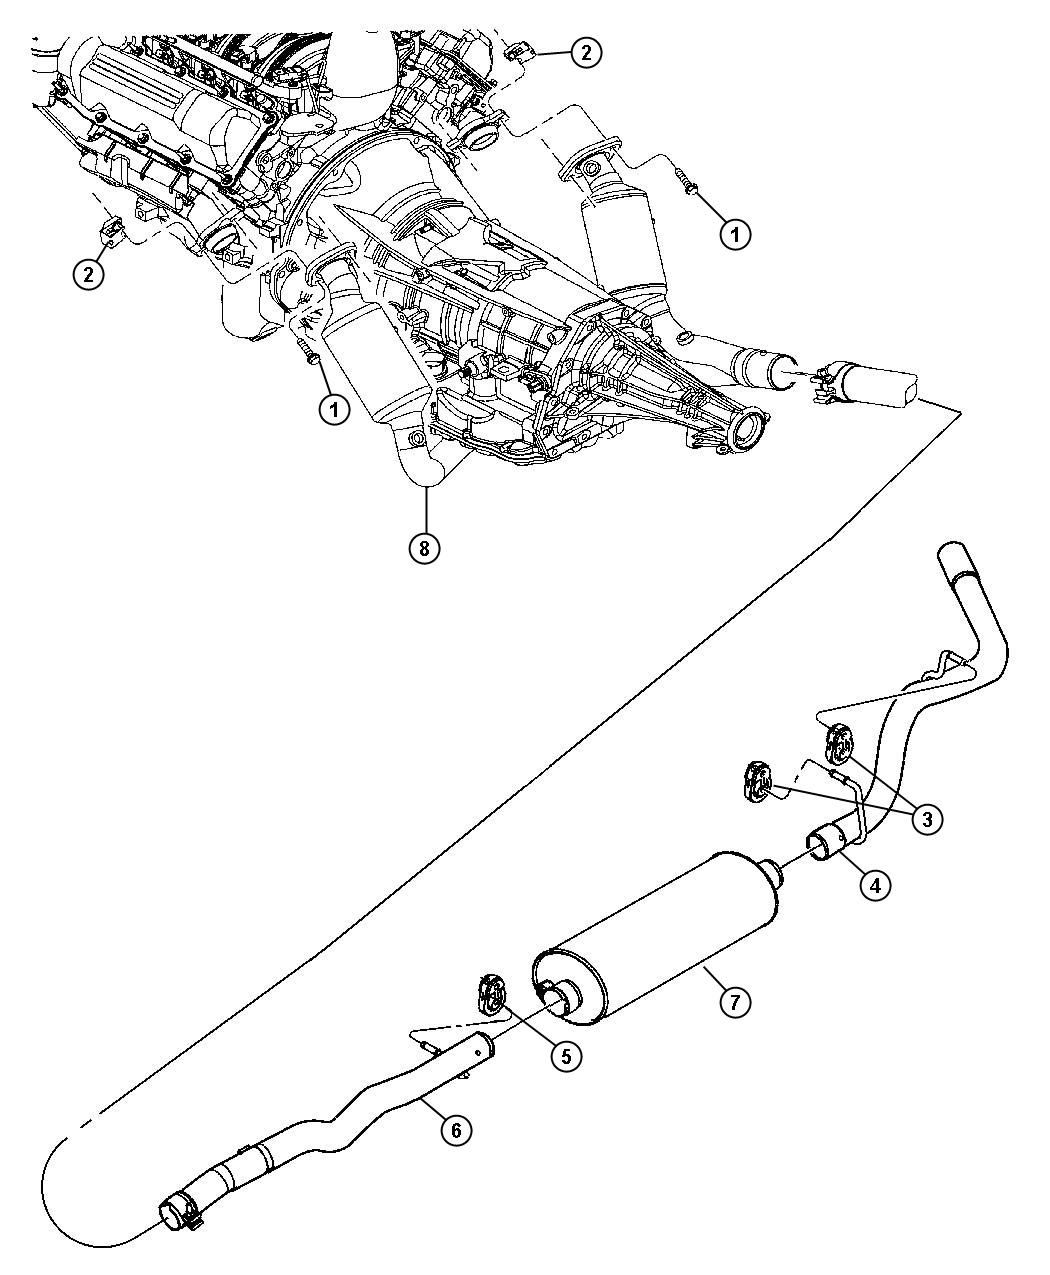 Dodge Dakota Used For Pipe And Converter Exhaust To